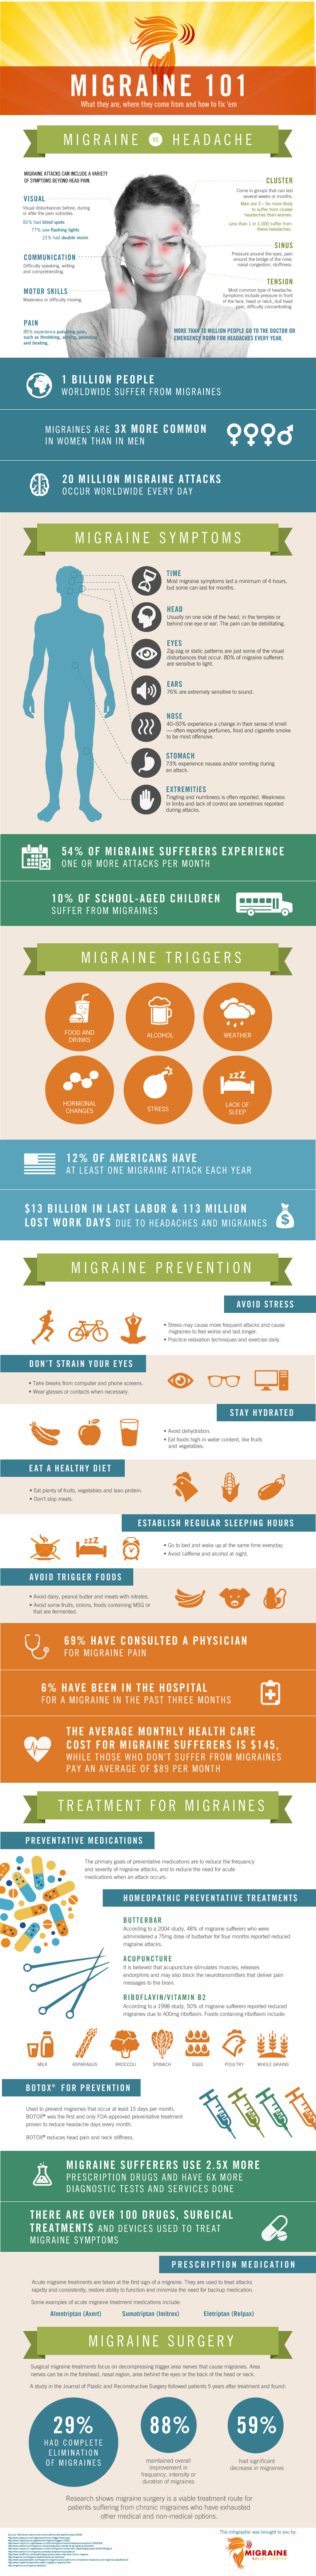 Migraine: Where It's Coming From And How To Cure It Infographic